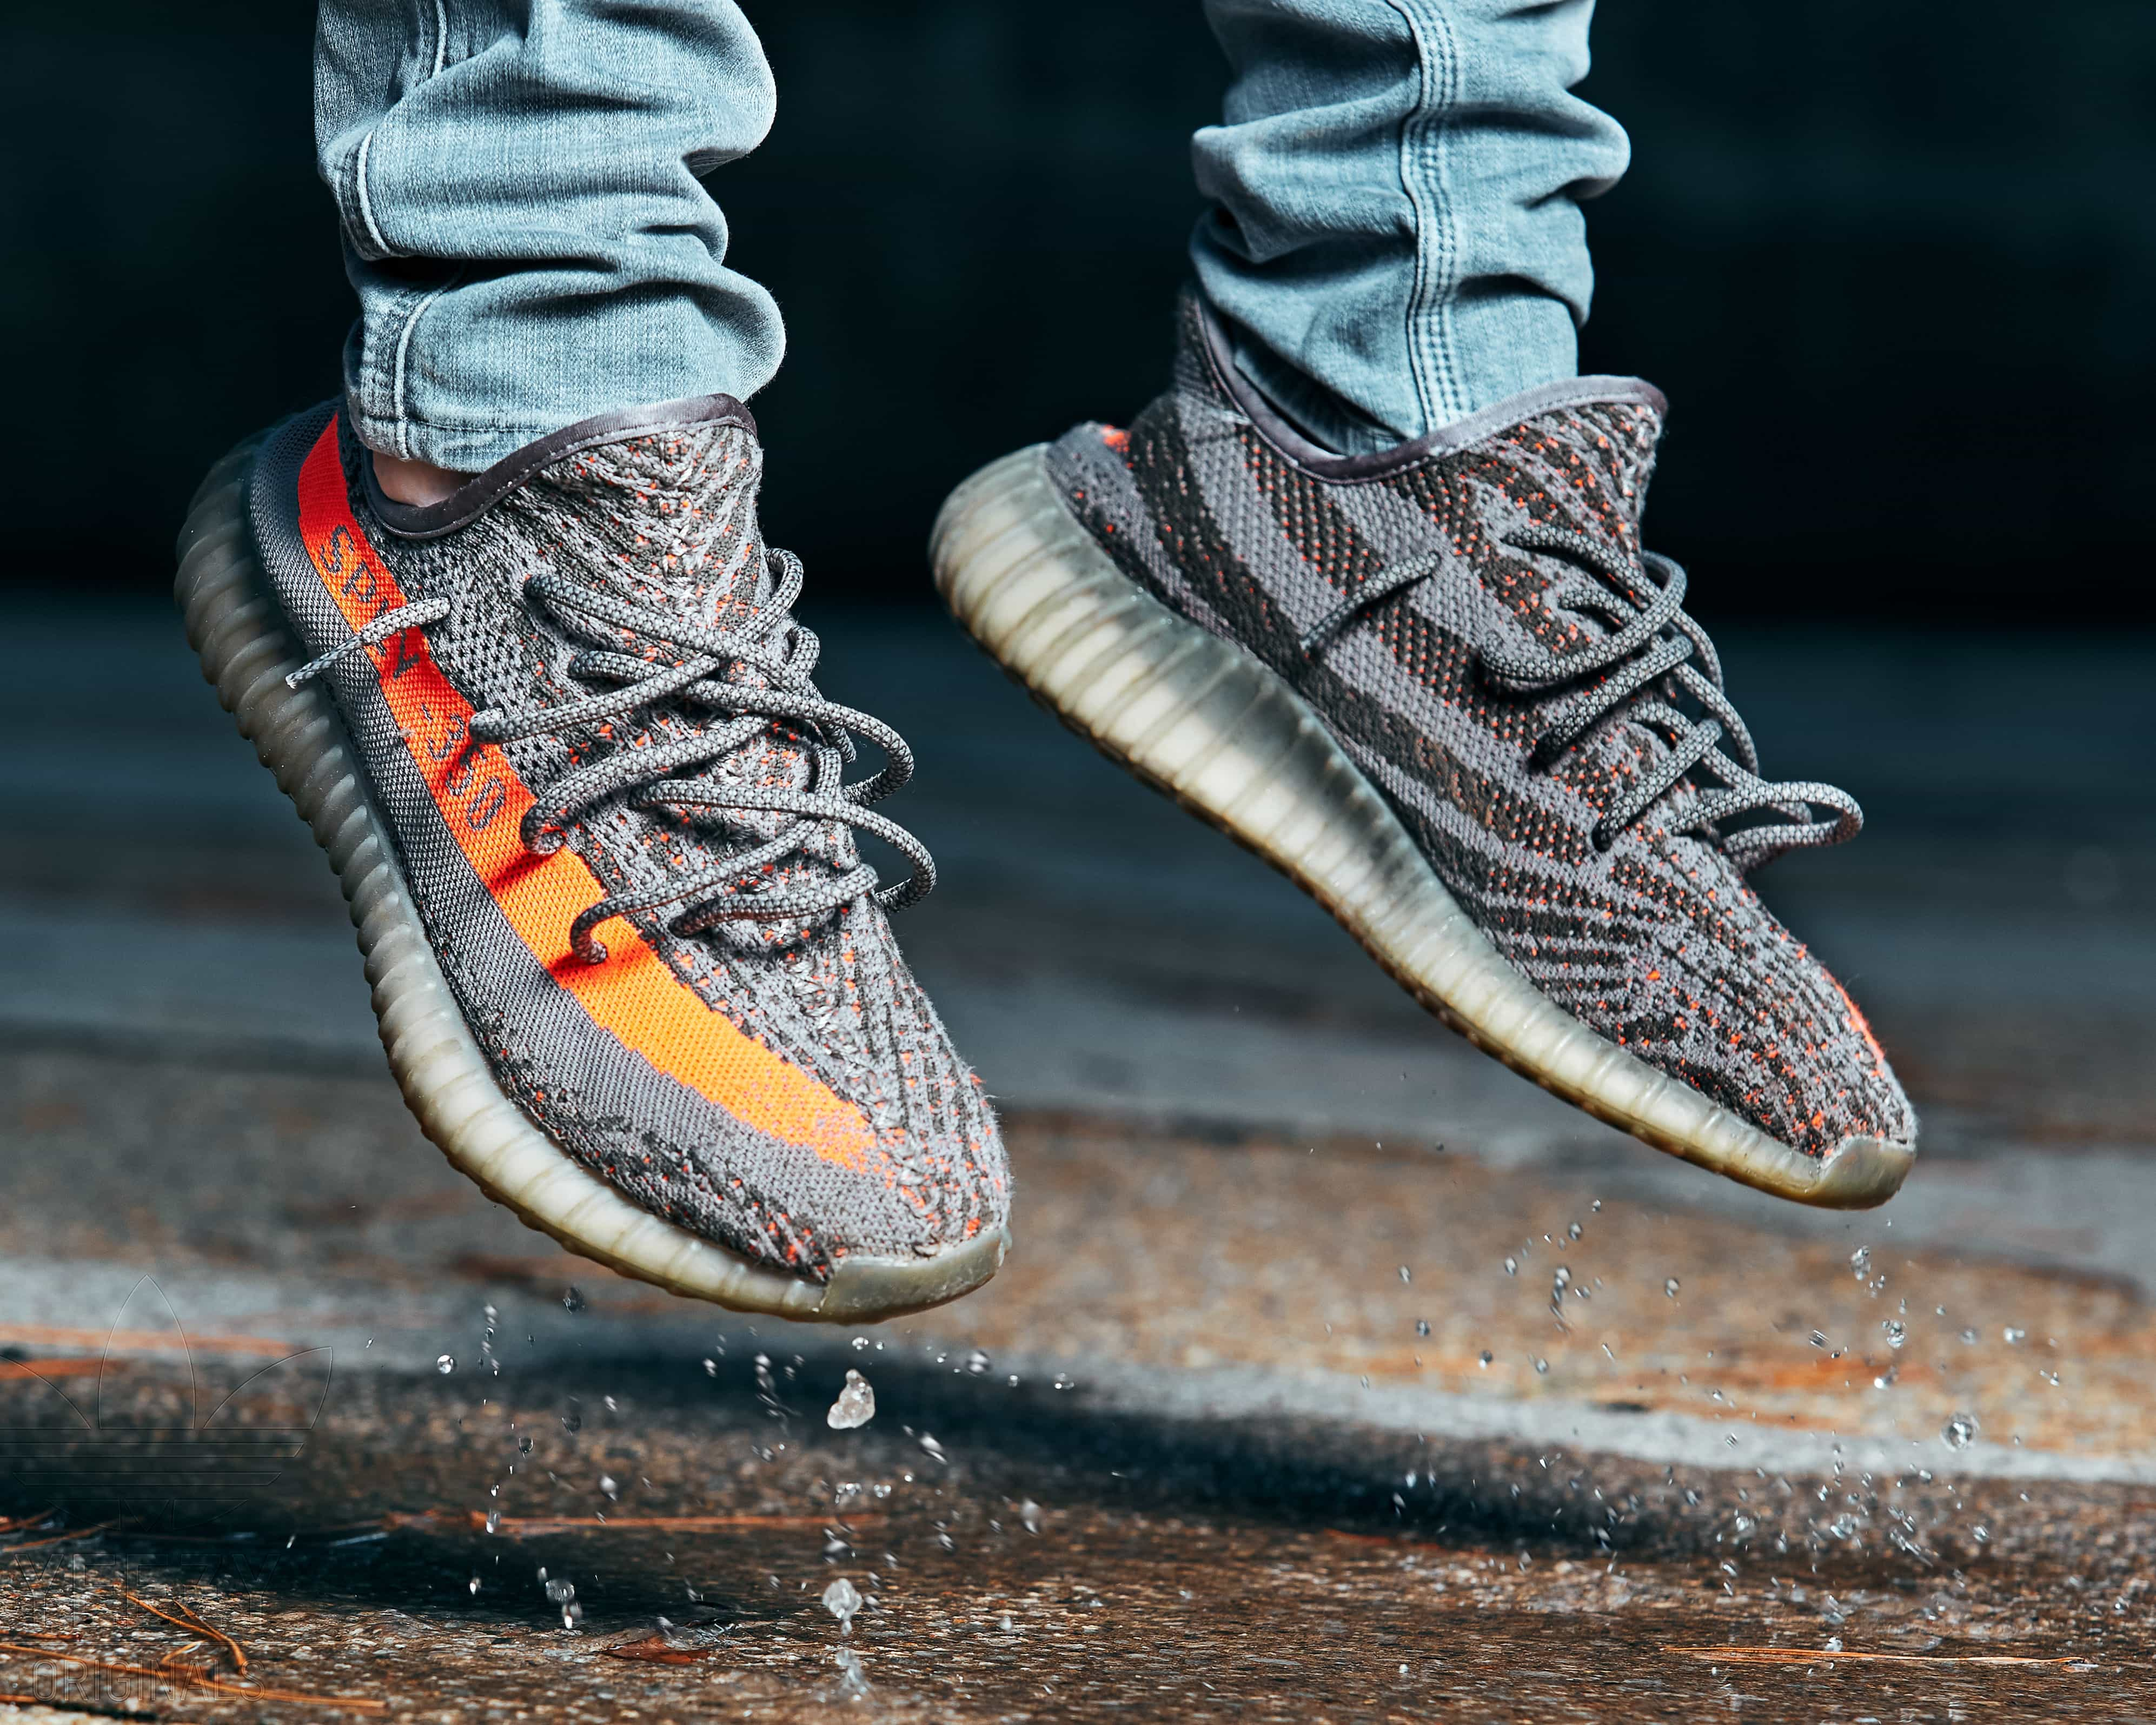 The 5 most expensive sneakers right now (2019 Q2)